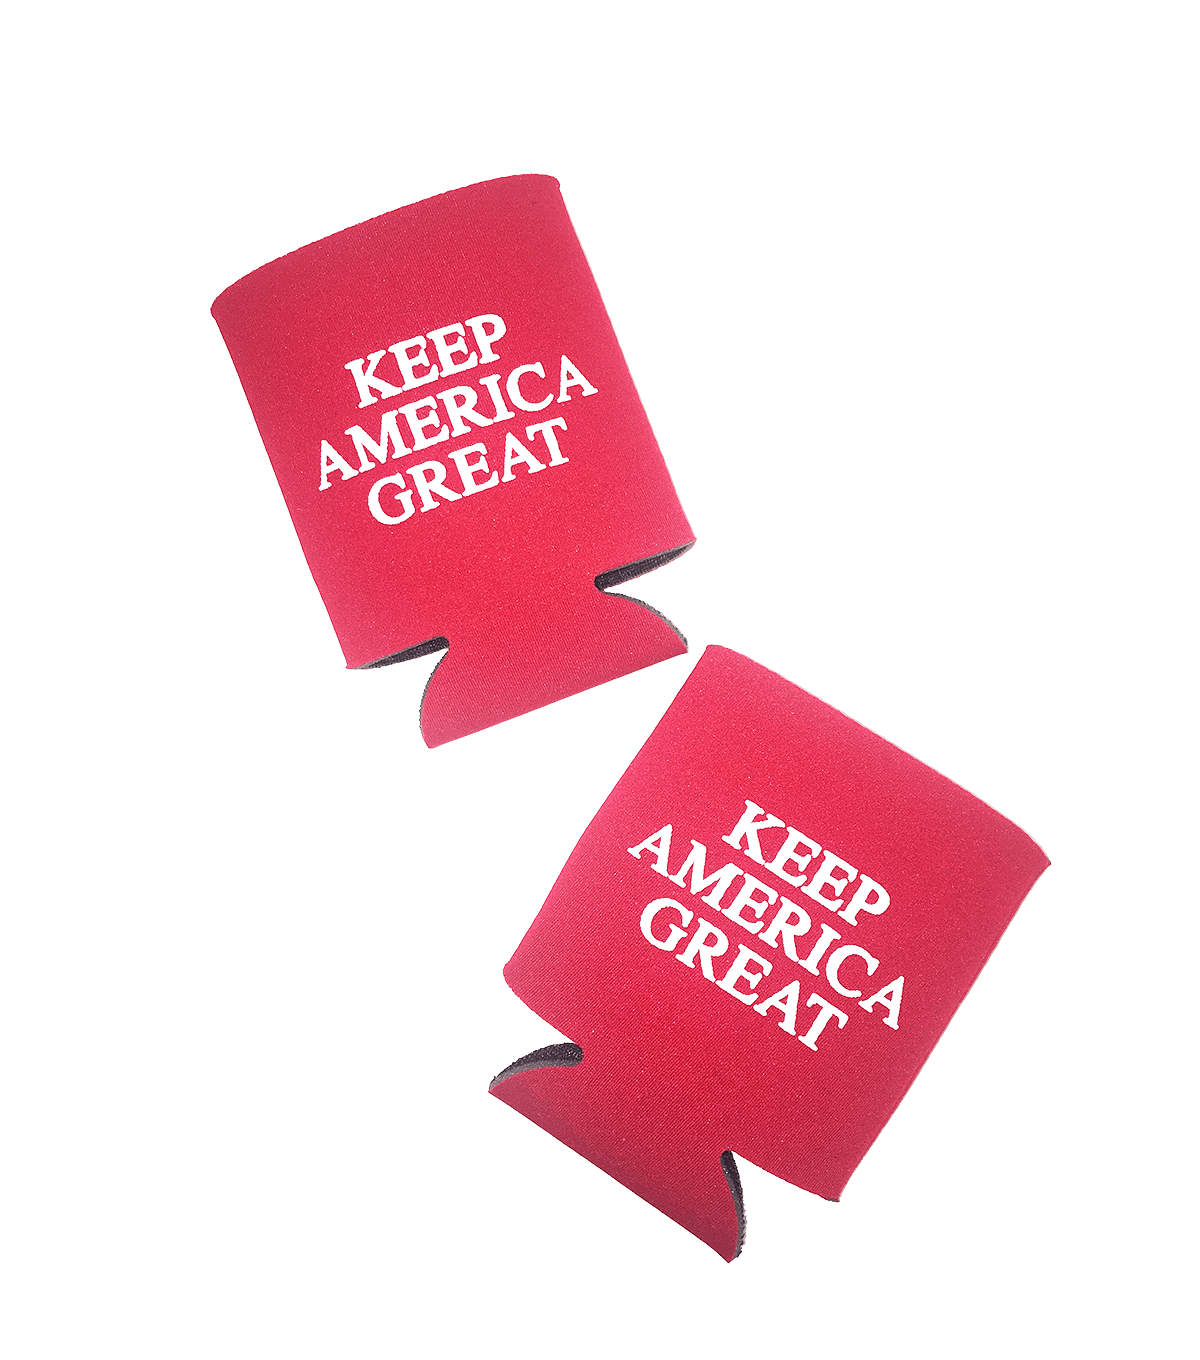 Keep America Great Beverage Coolers - Set of 2